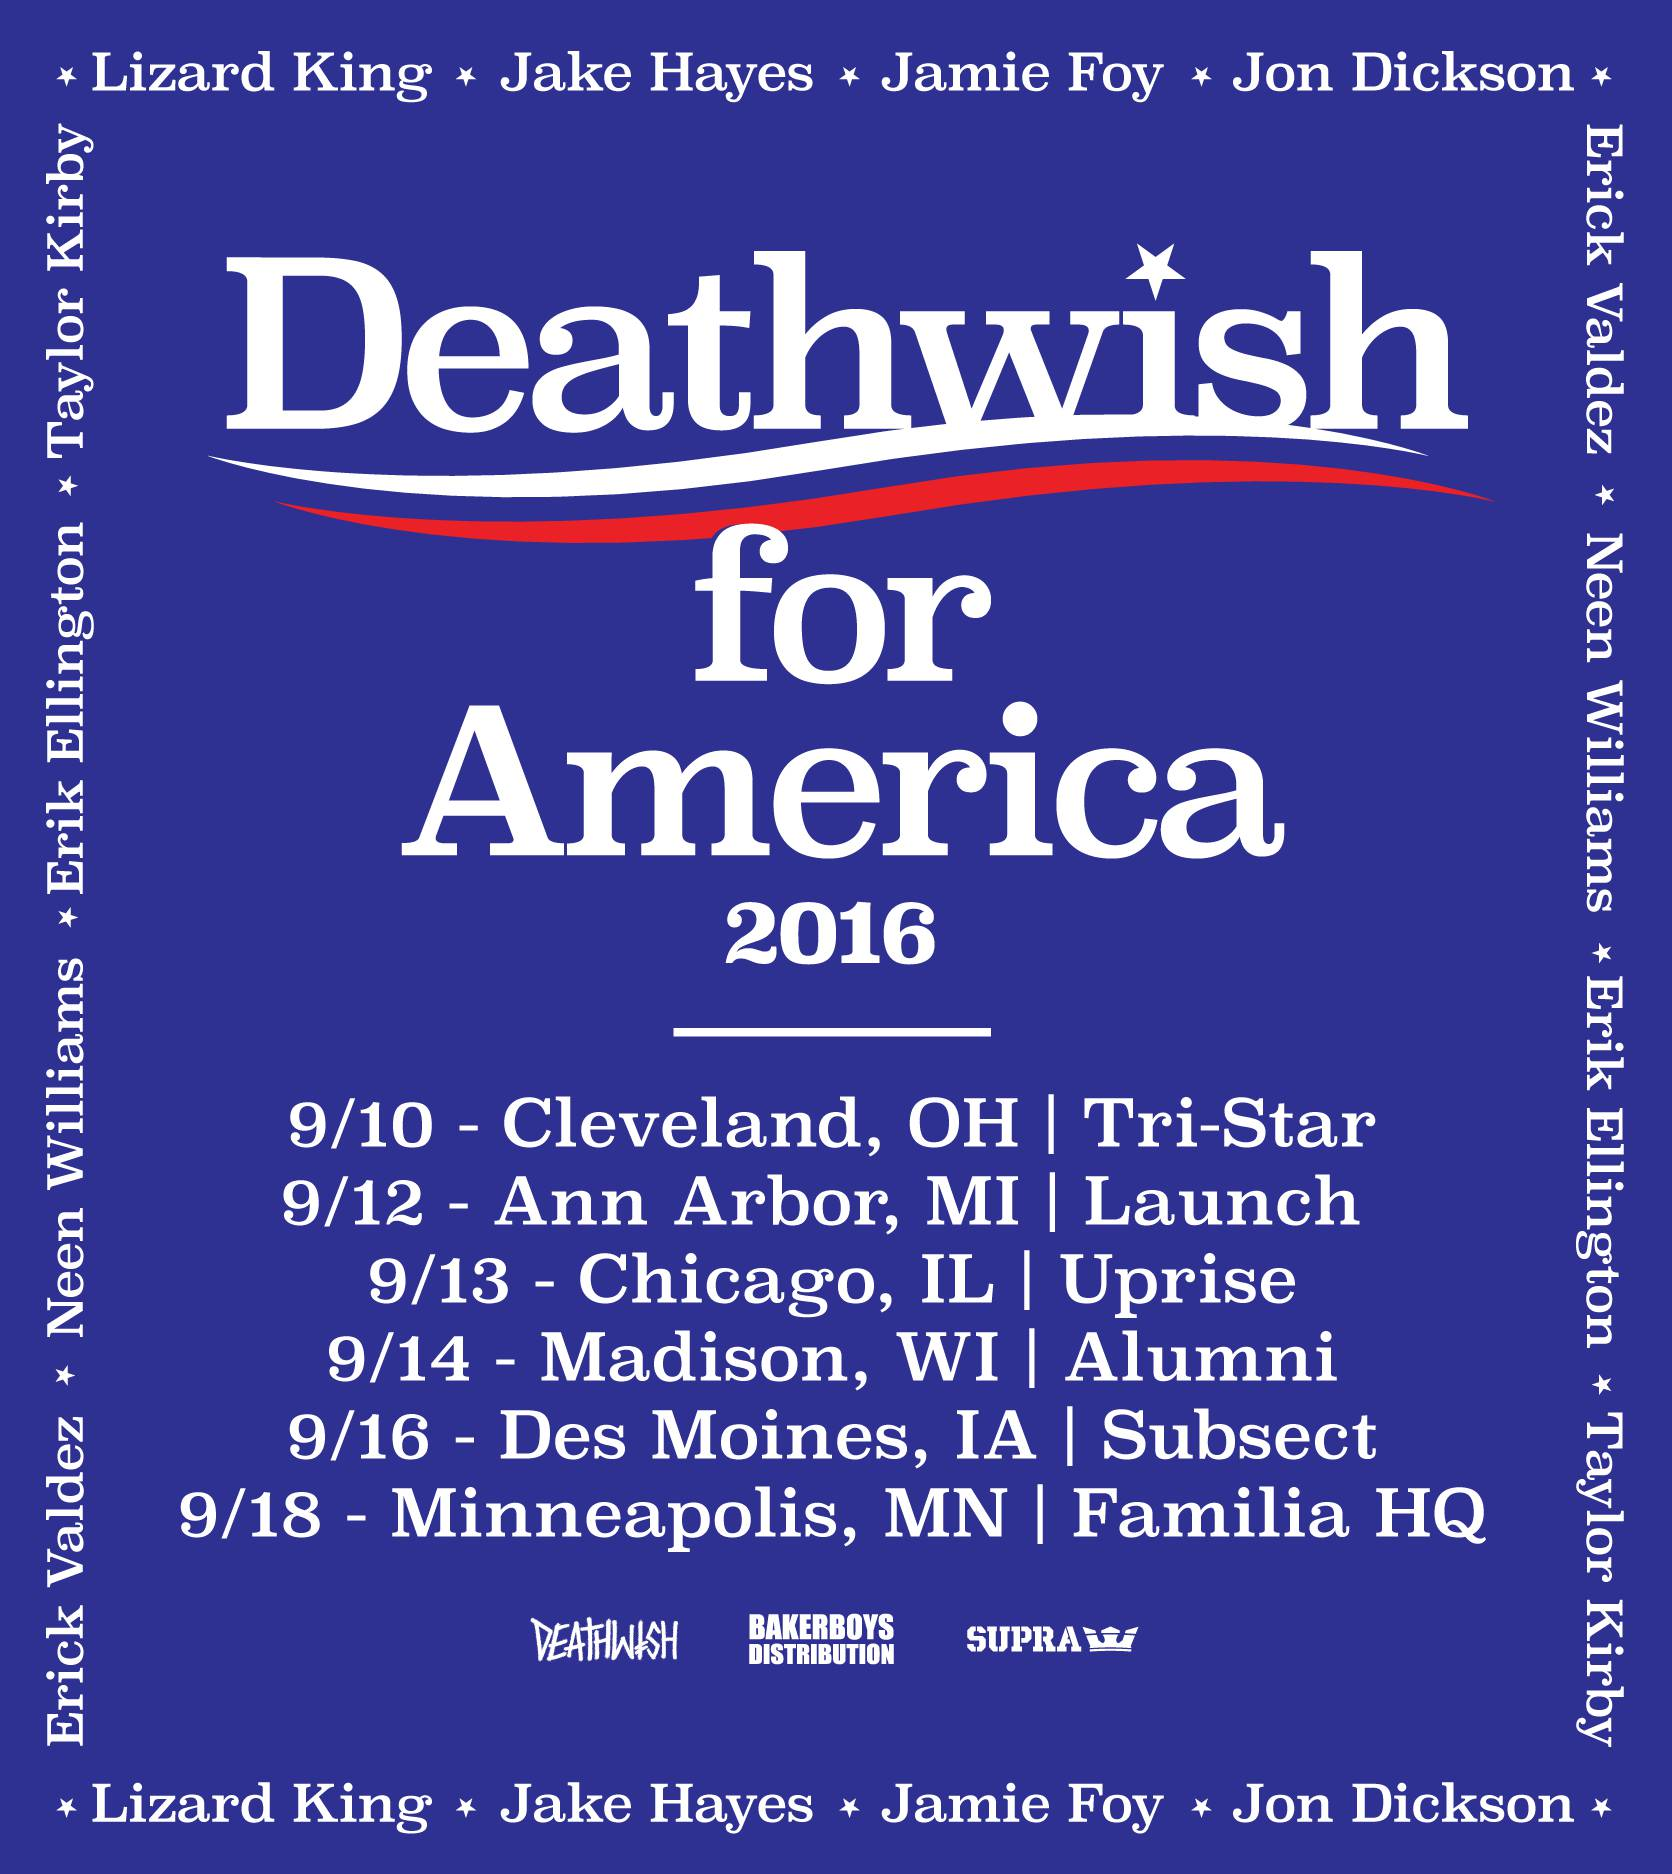 Deathwish for America -- Tour Dates & Stops